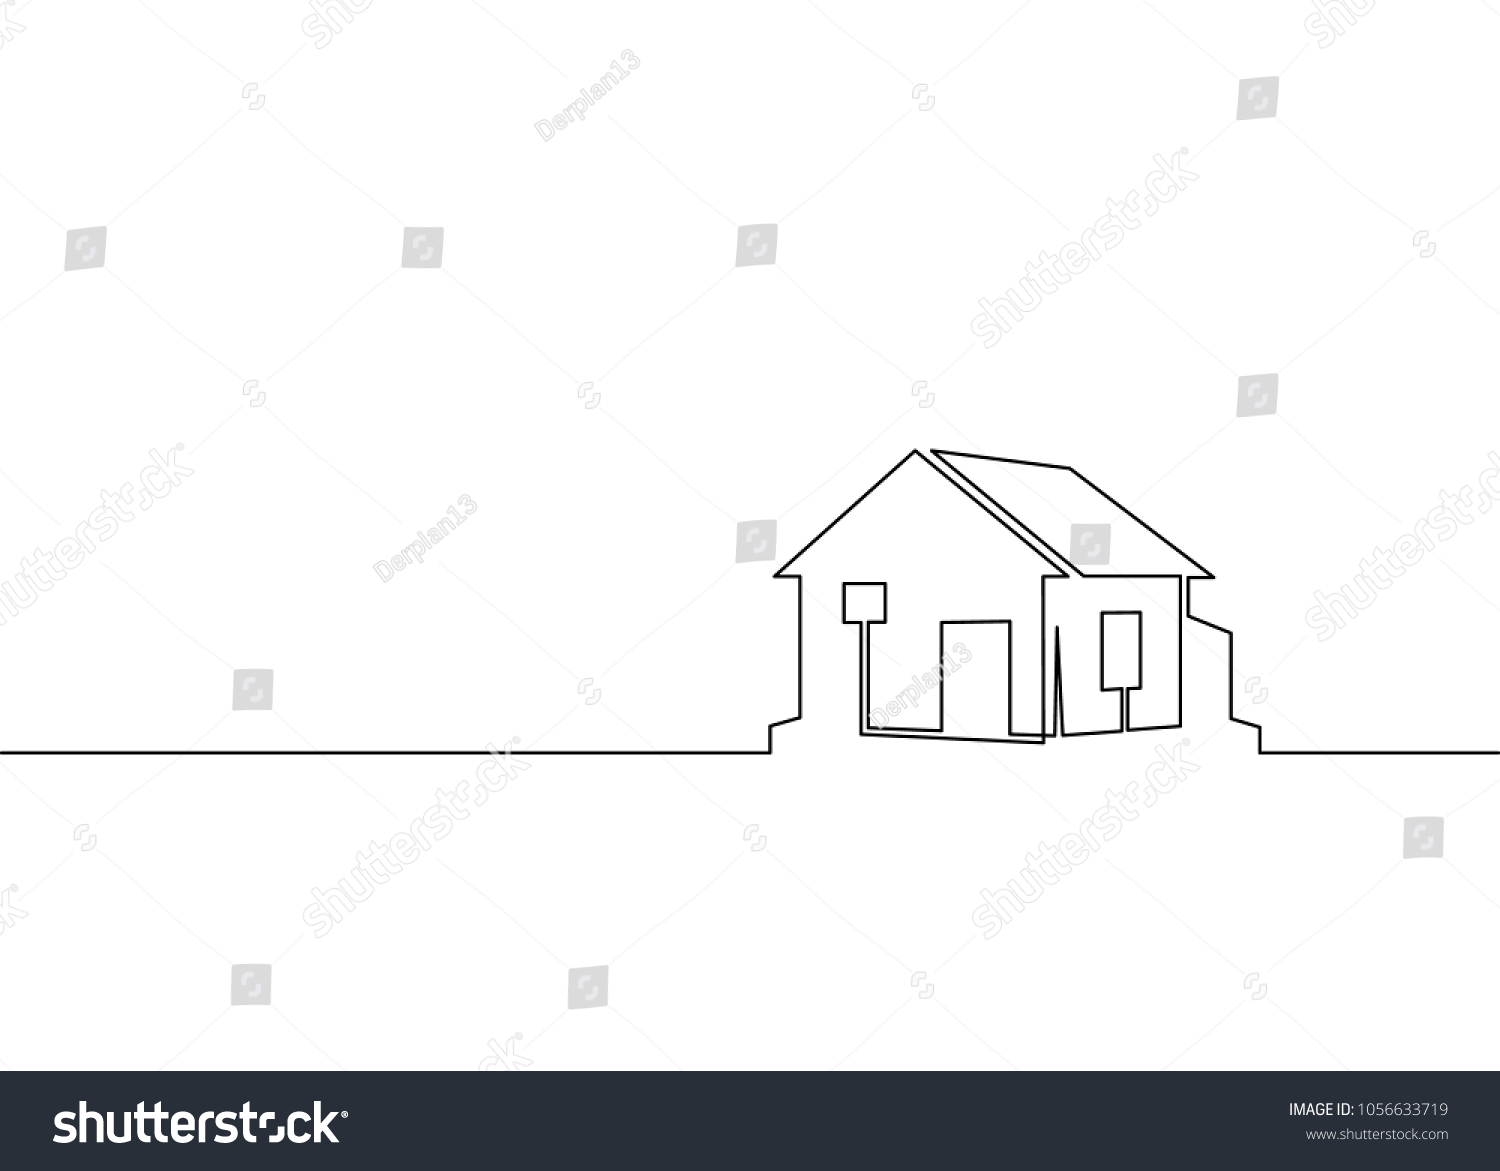 Single Line Text Art : One line logo design real estate stock vector